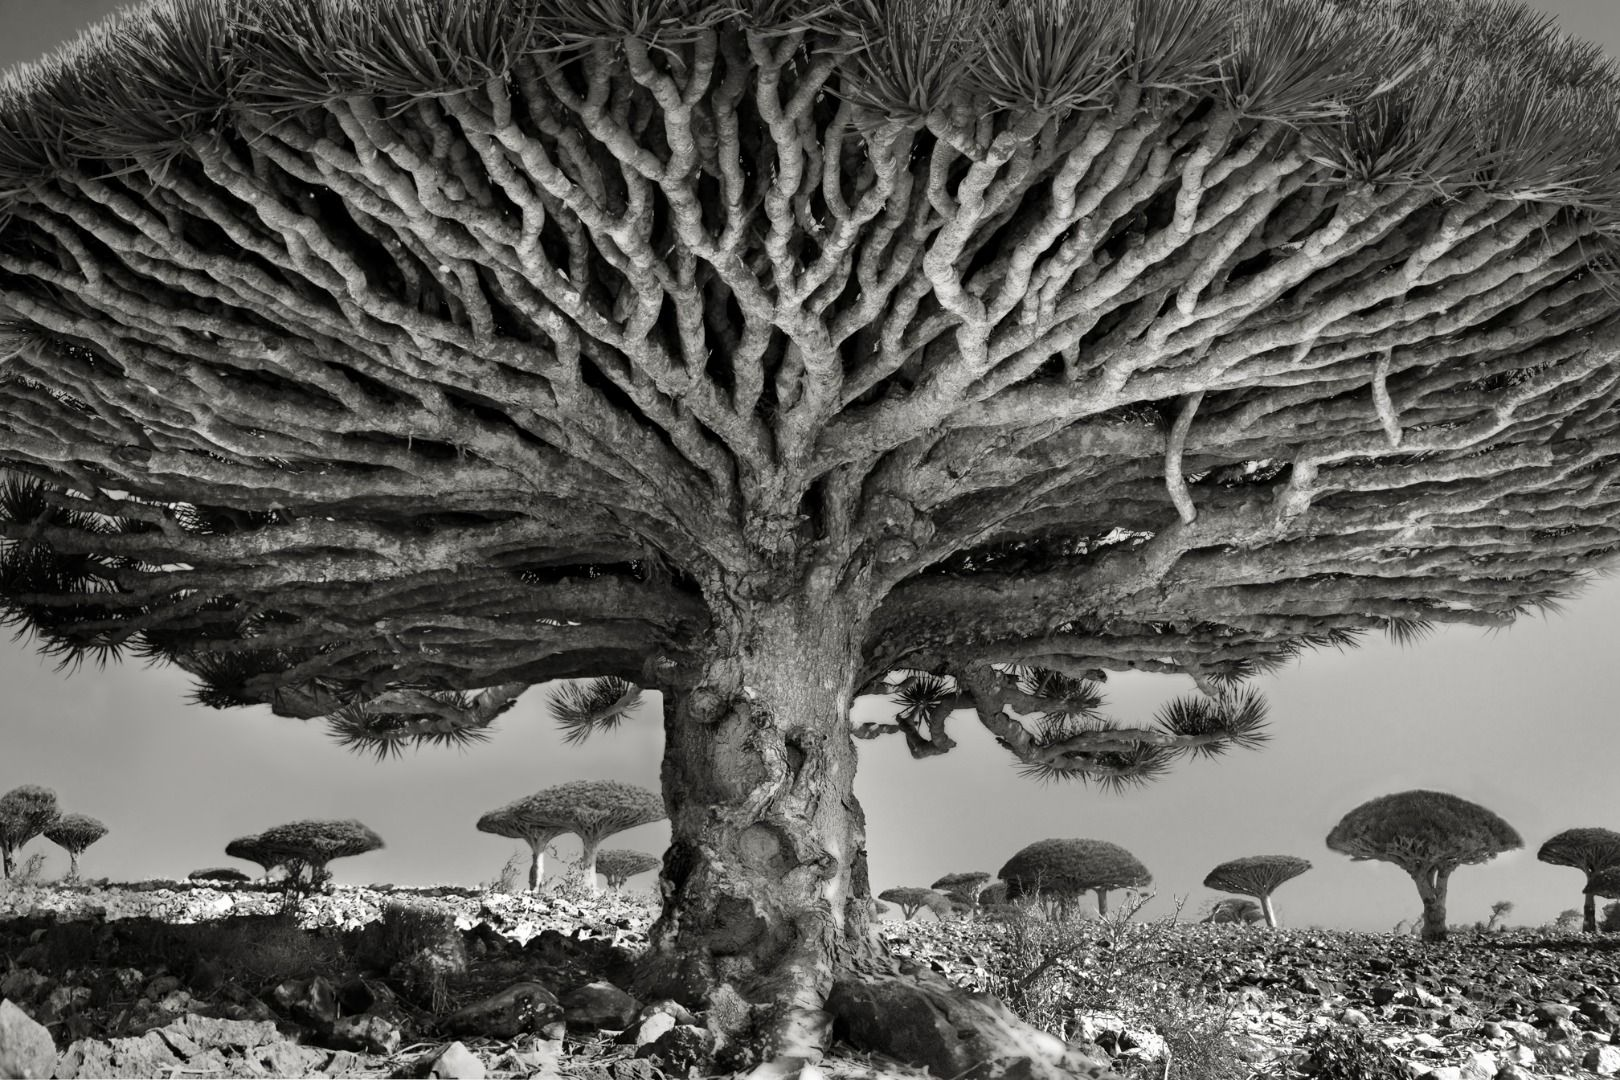 Portraits of Time: Ancient Trees